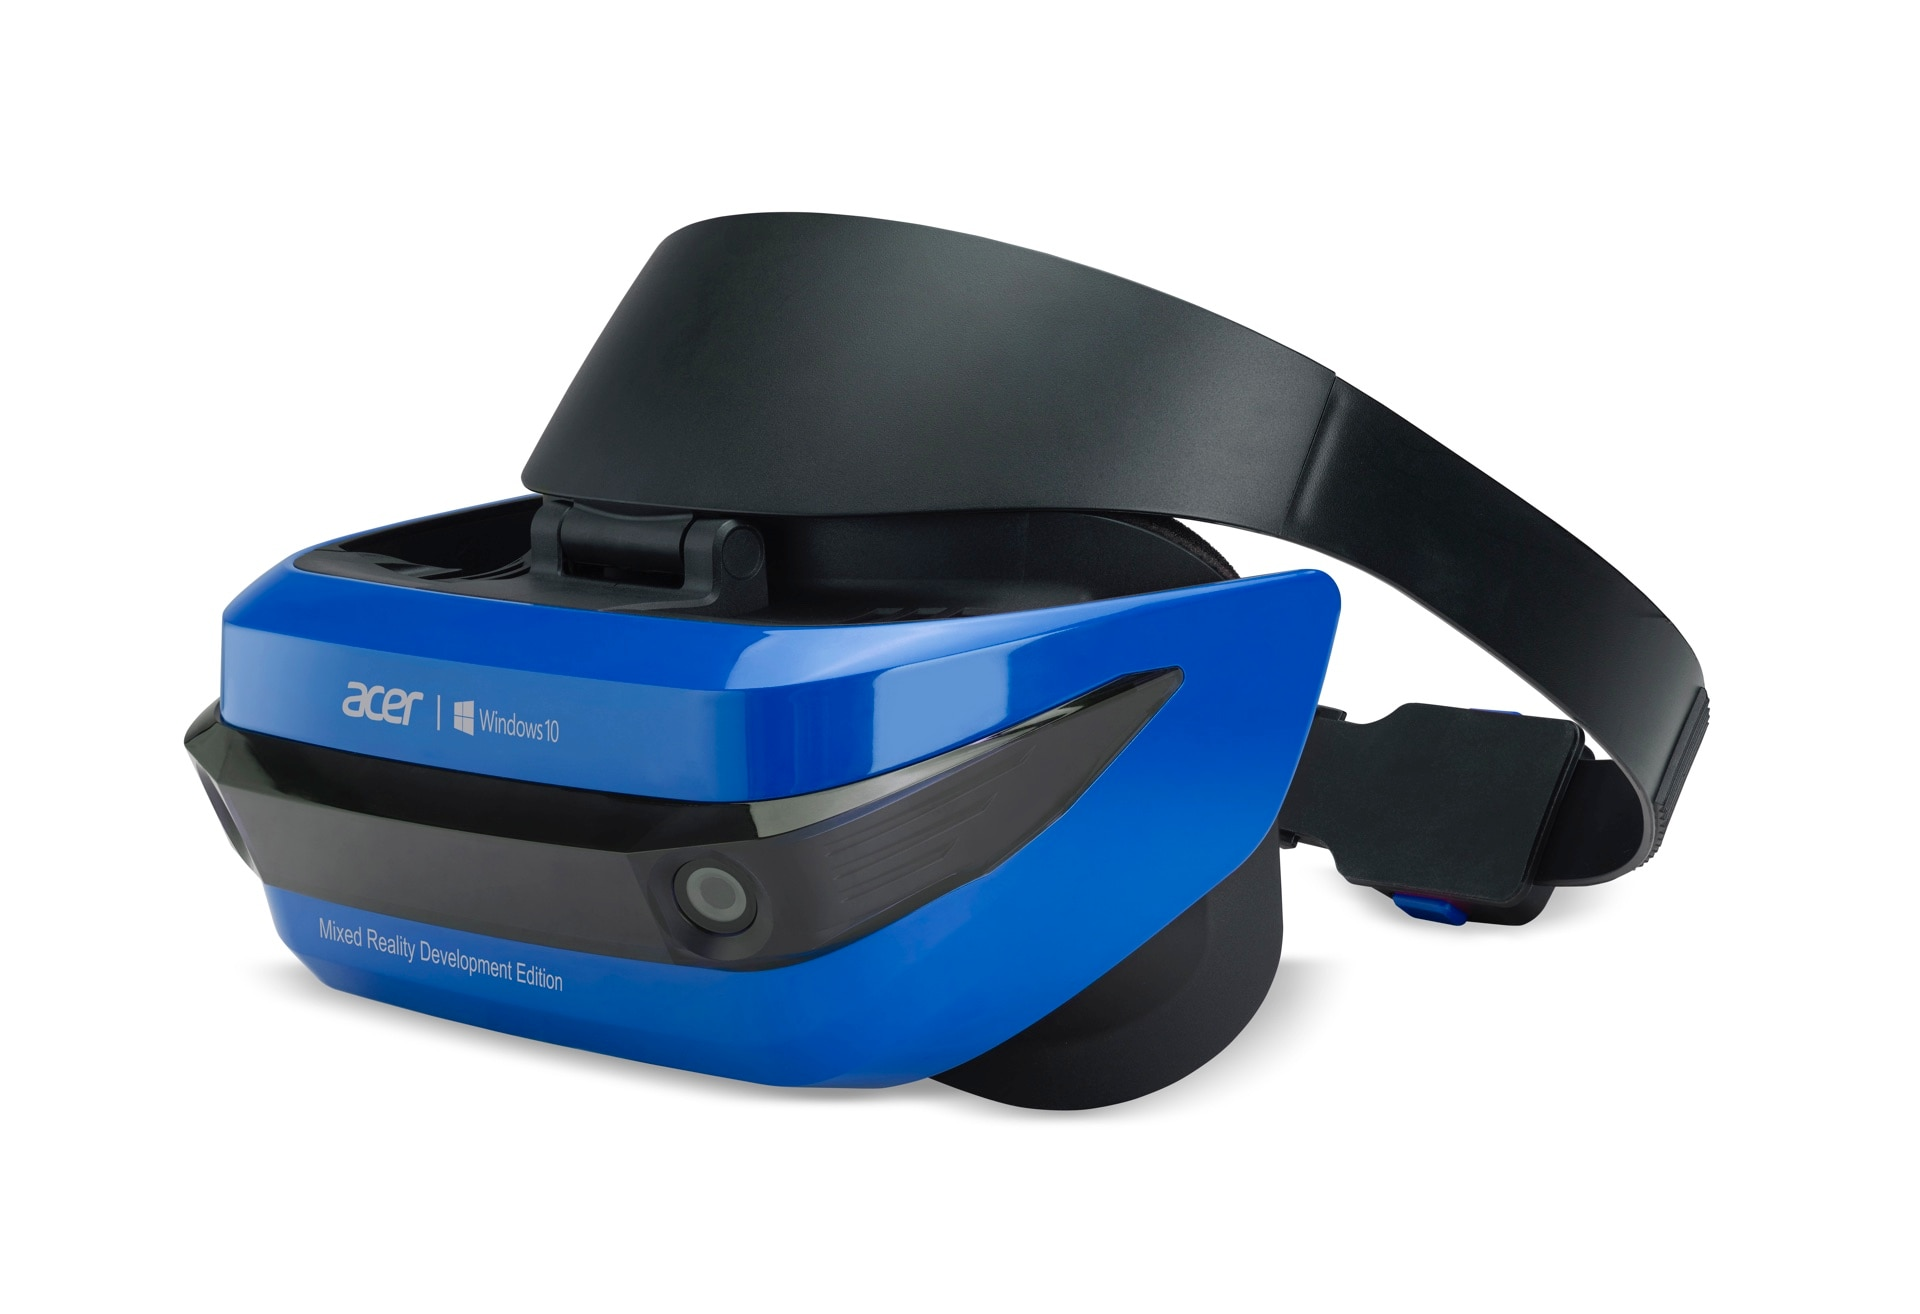 Acer Windows Mixed Reality Head-Mounted Display_02 copy